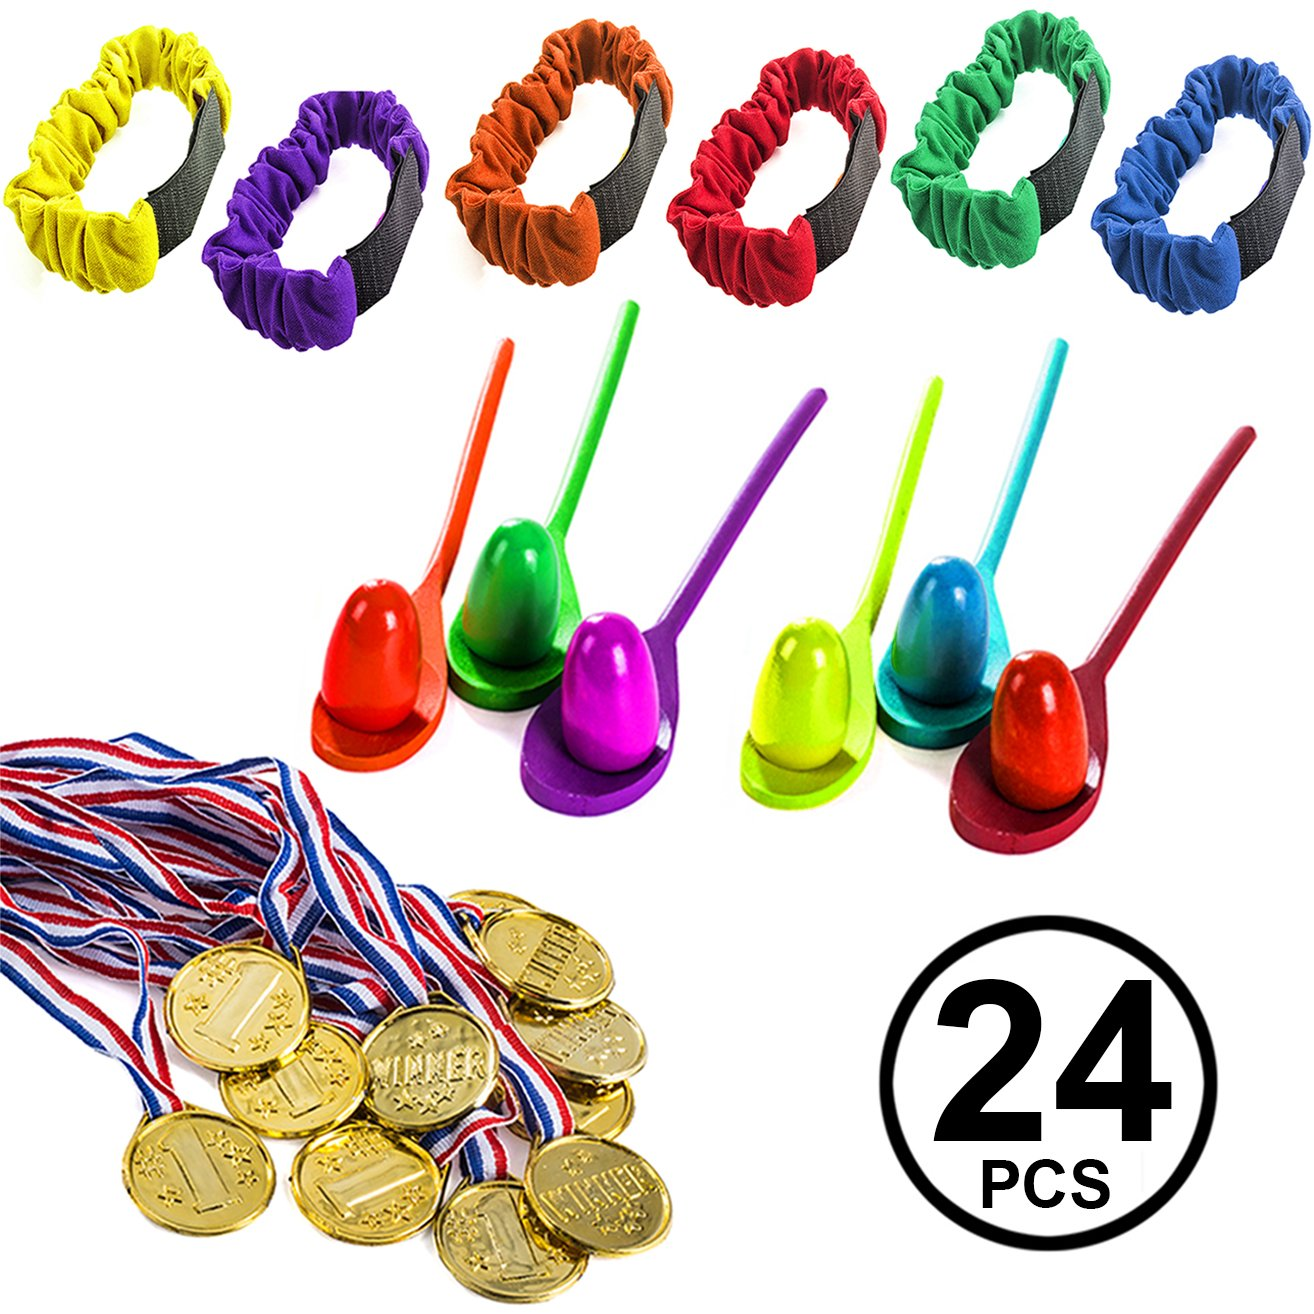 Carnival Games - 24 Pc Set - Relay Races - Party Games for Kids and Adults - Birthday Party Games Funny Party Hats